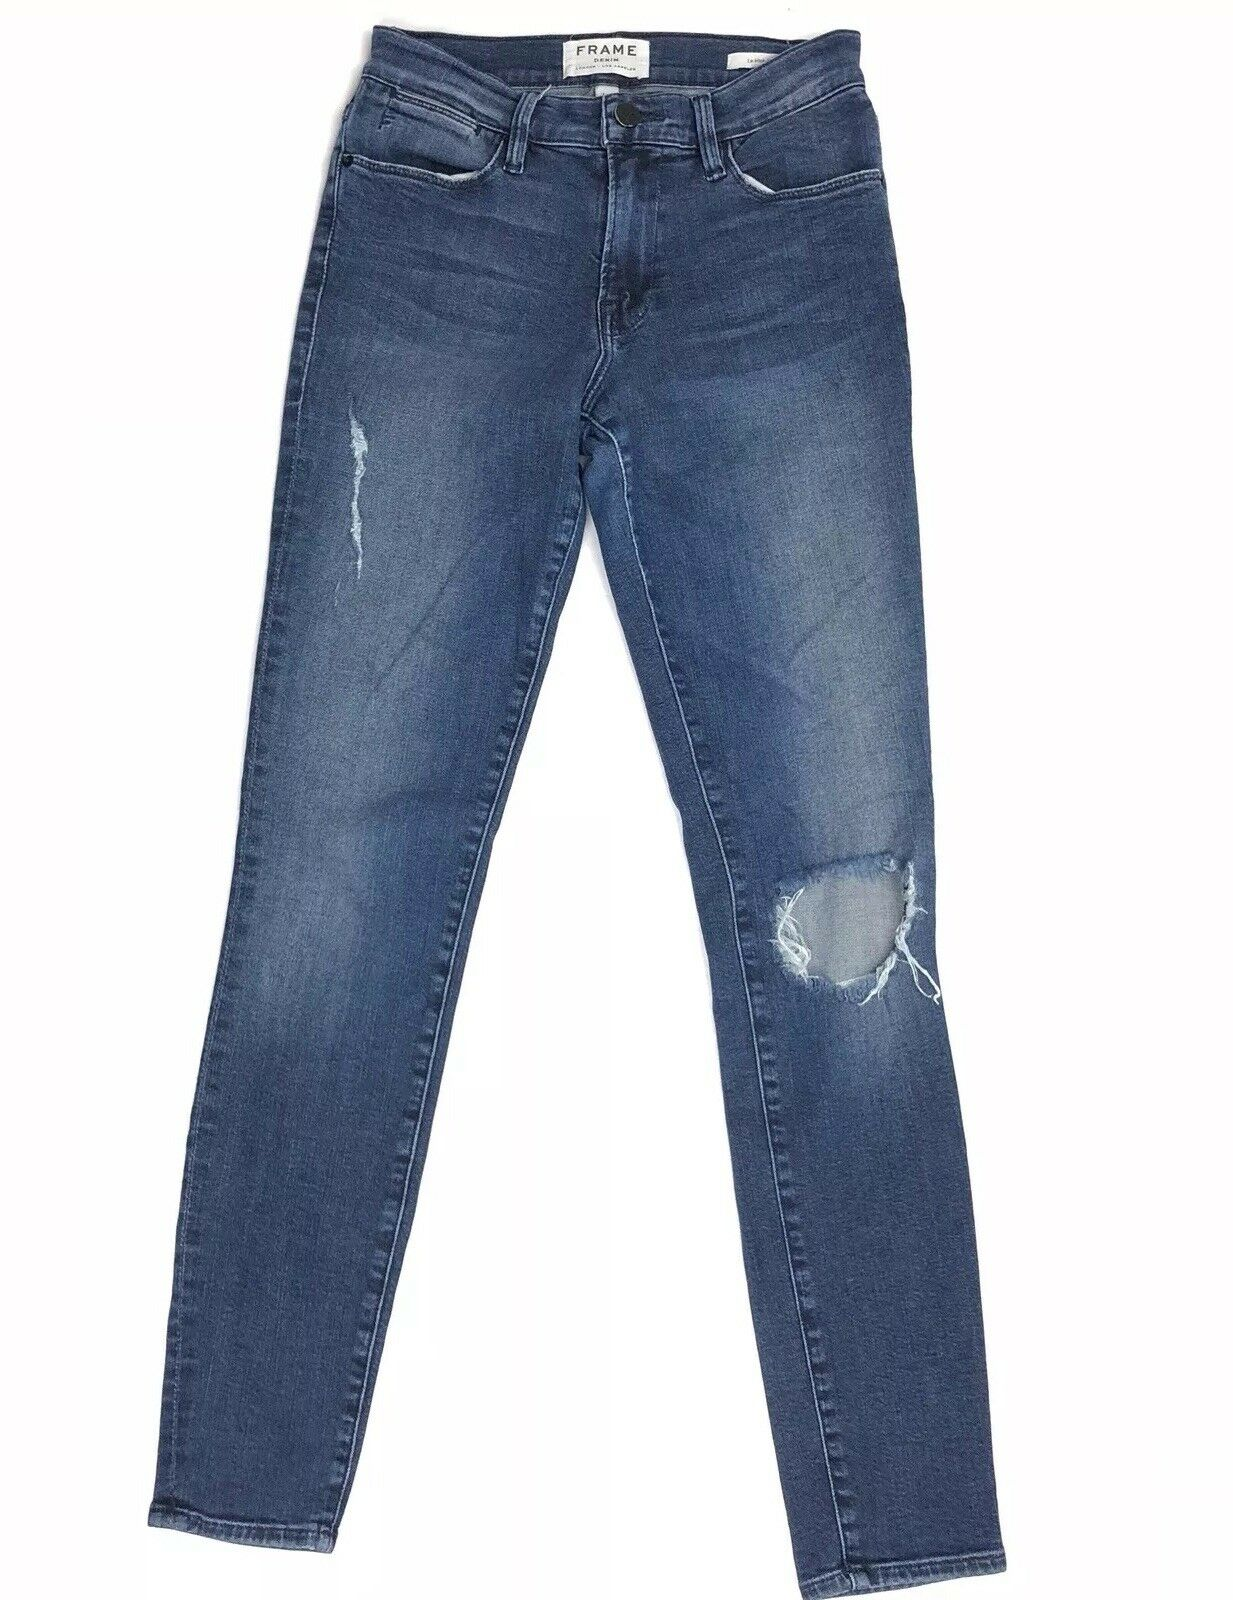 Frame Denim Le High Skinny Distressed Women's bluee Jeans Size 25 X 28.5